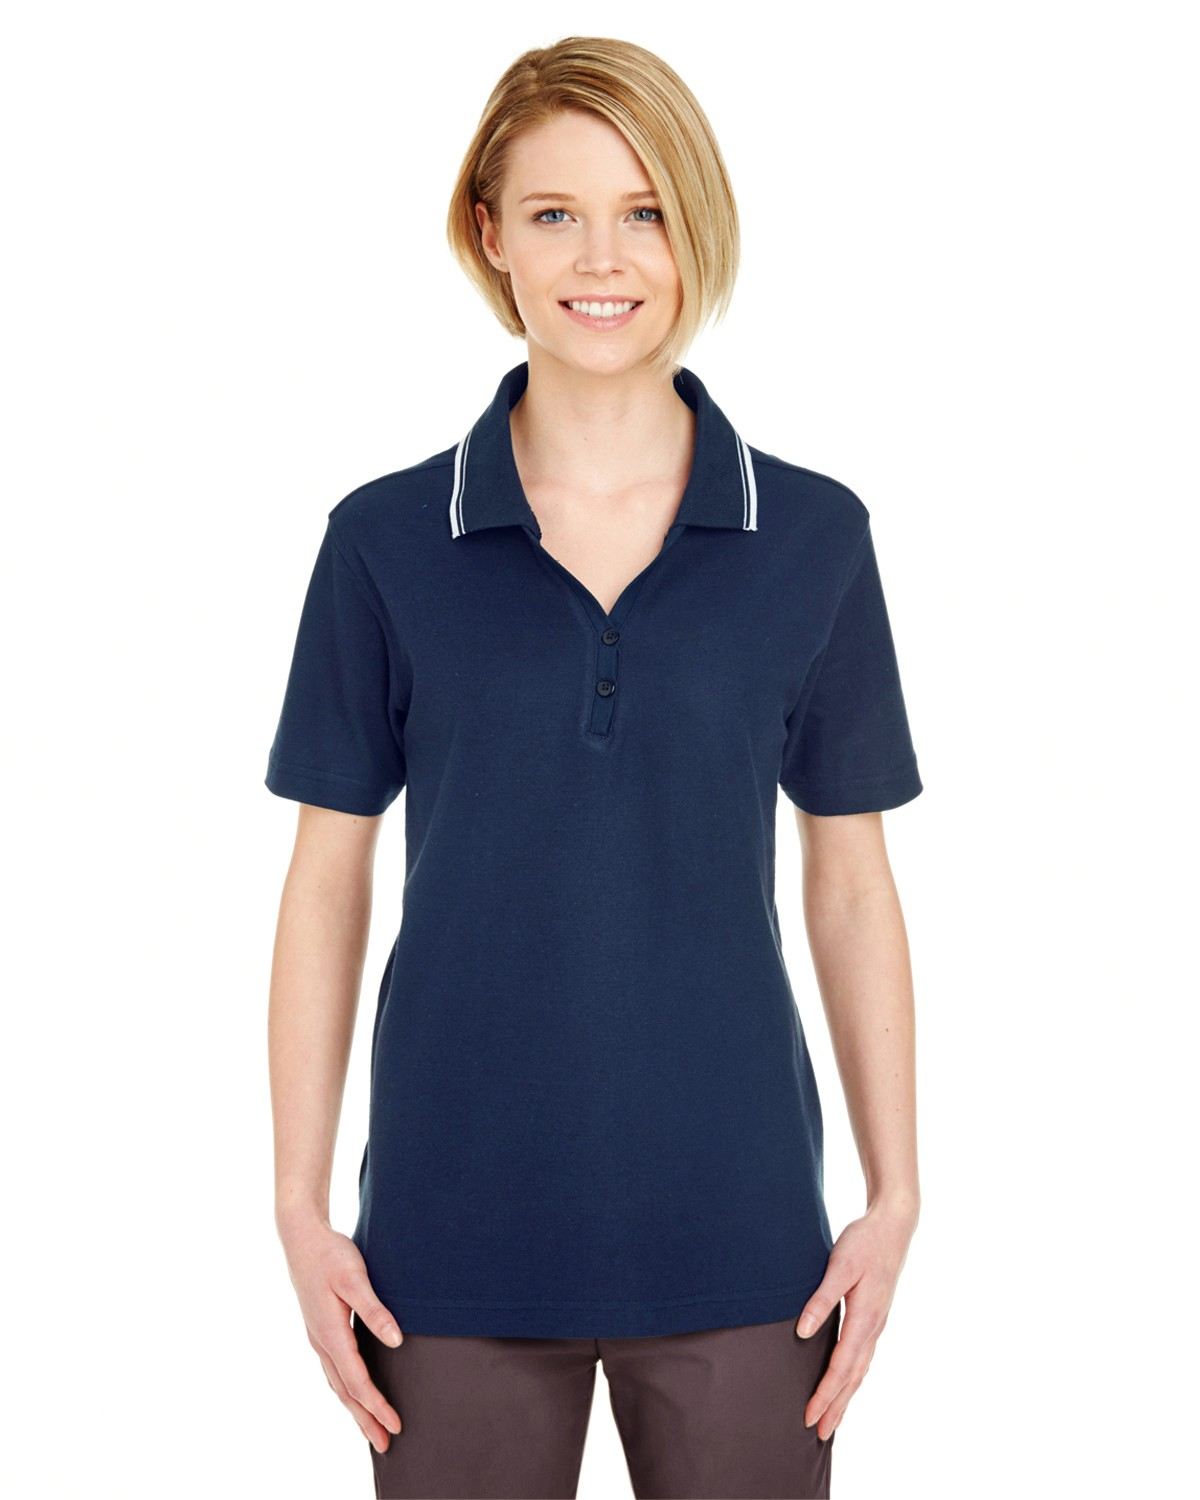 8546 UltraClub NAVY/WHITE